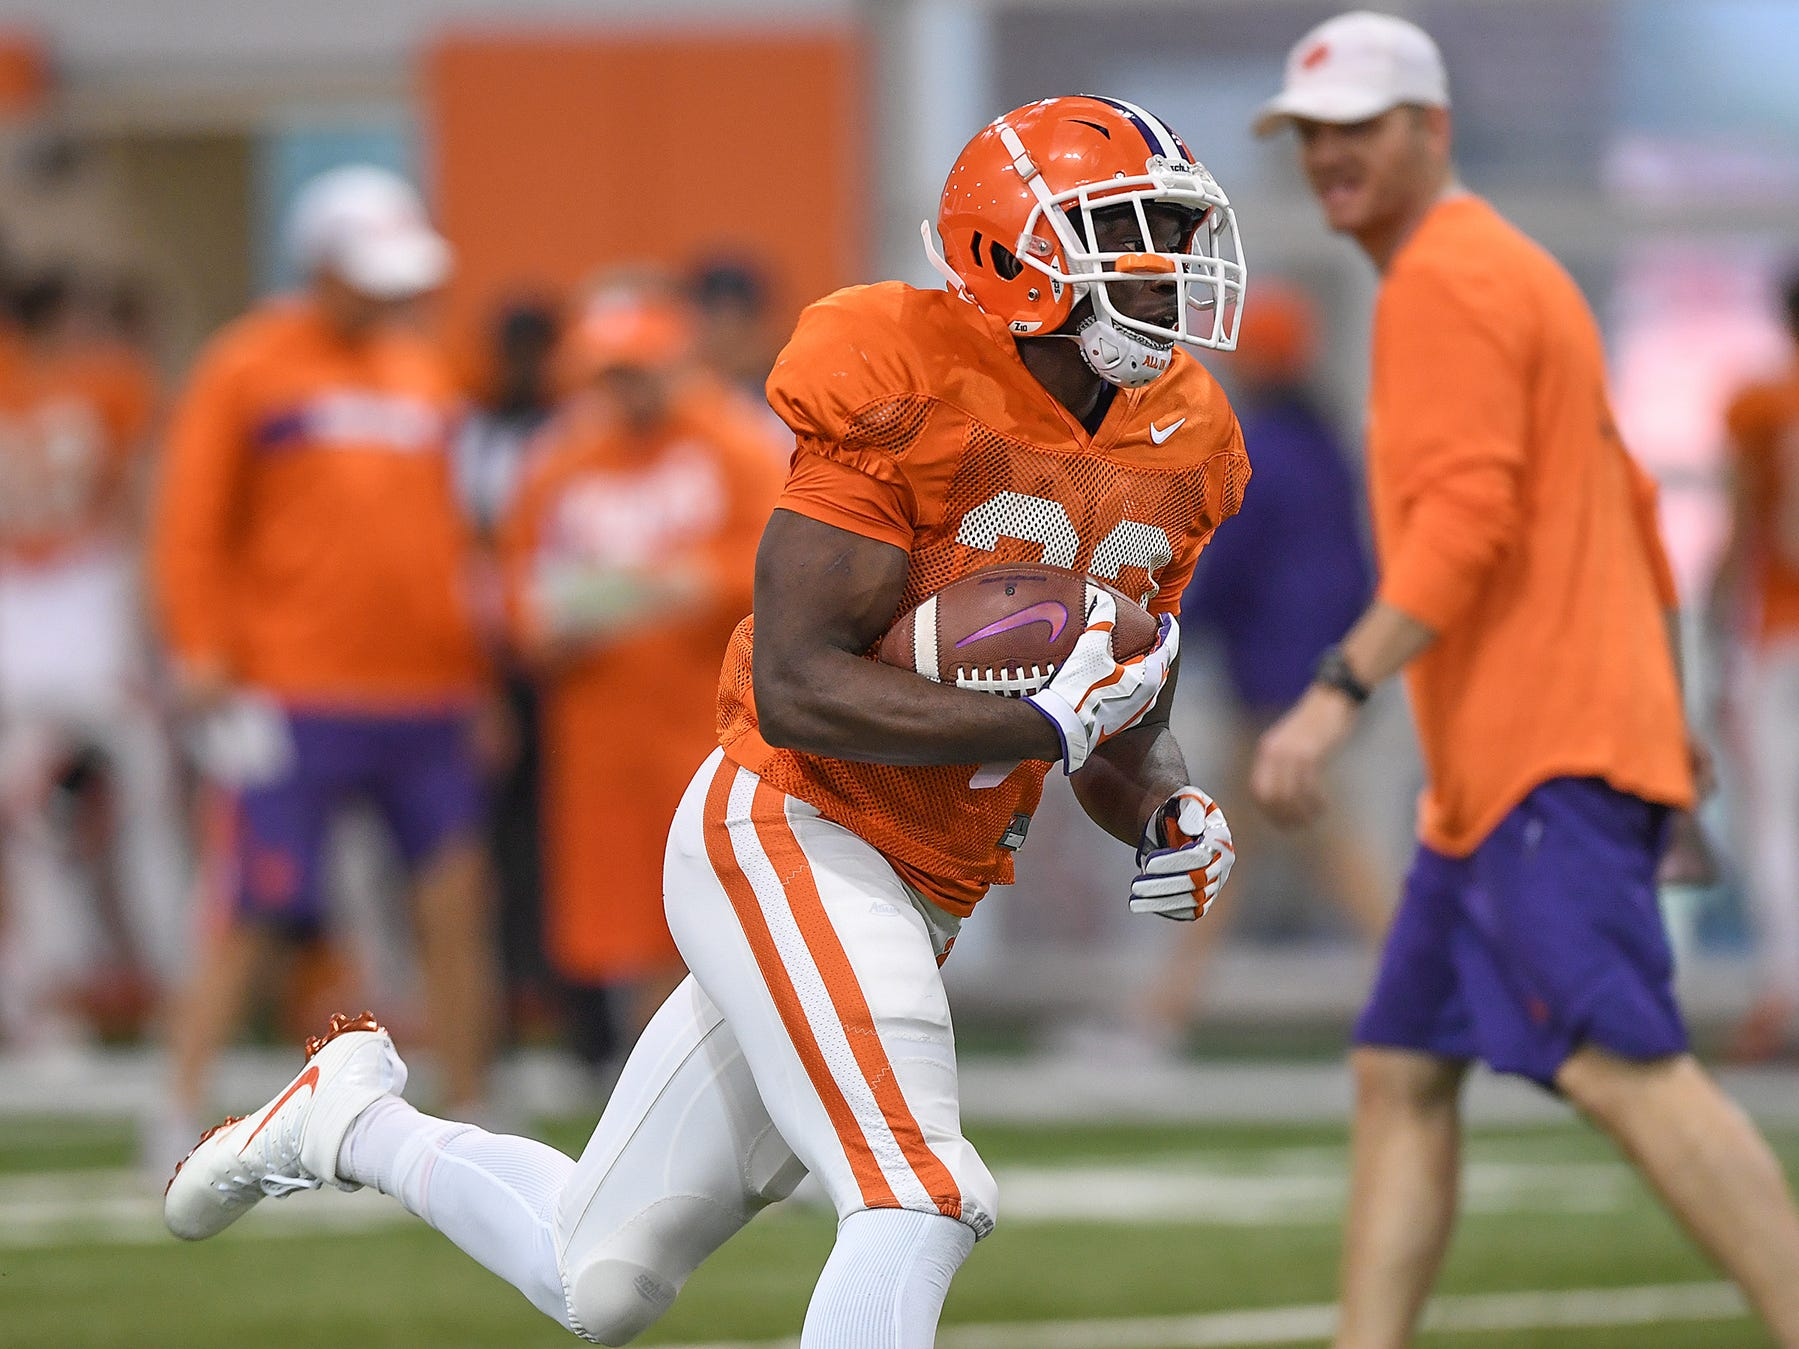 Clemson running back Lyn-J Dixon (23) carries the ball during the Tigers Cotton Bowl practice on Friday, December 14, 2018.